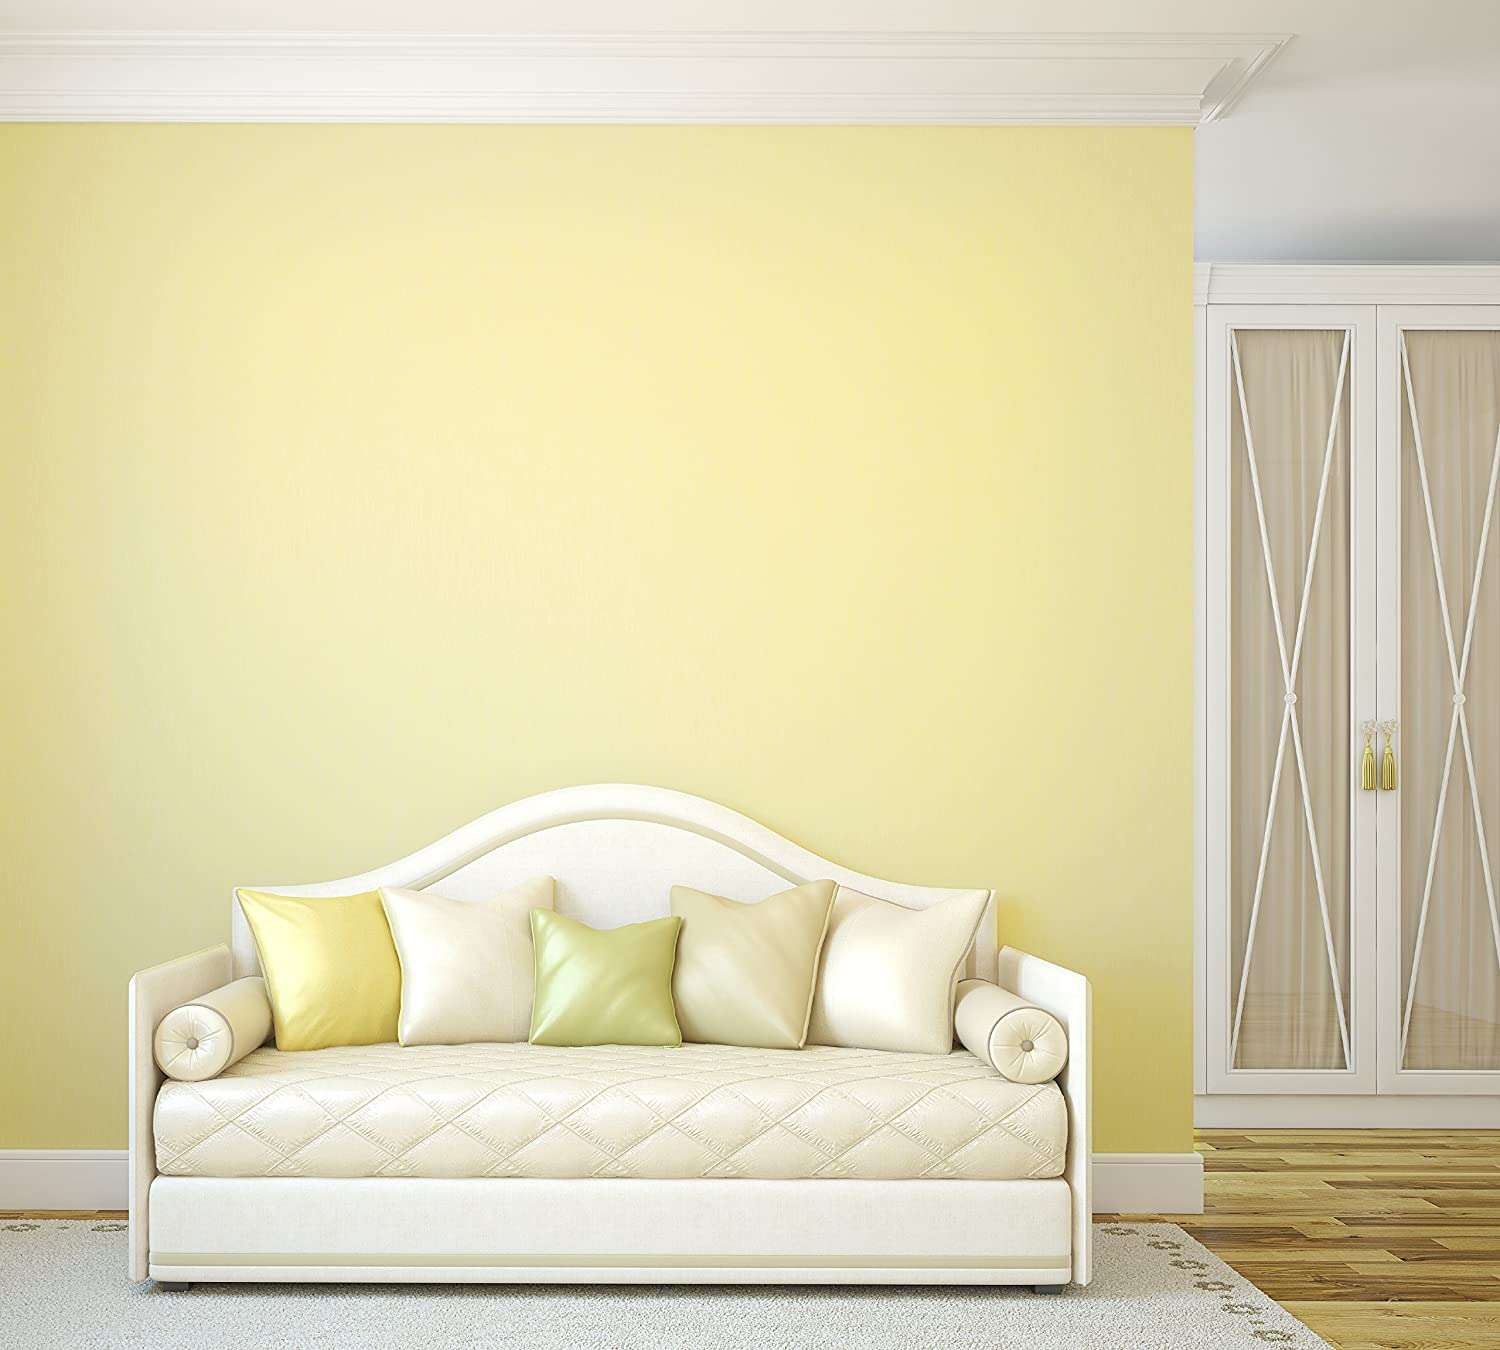 TemPaint: Removable Peel-and-Stick Paint (Buttercream Yellow ...